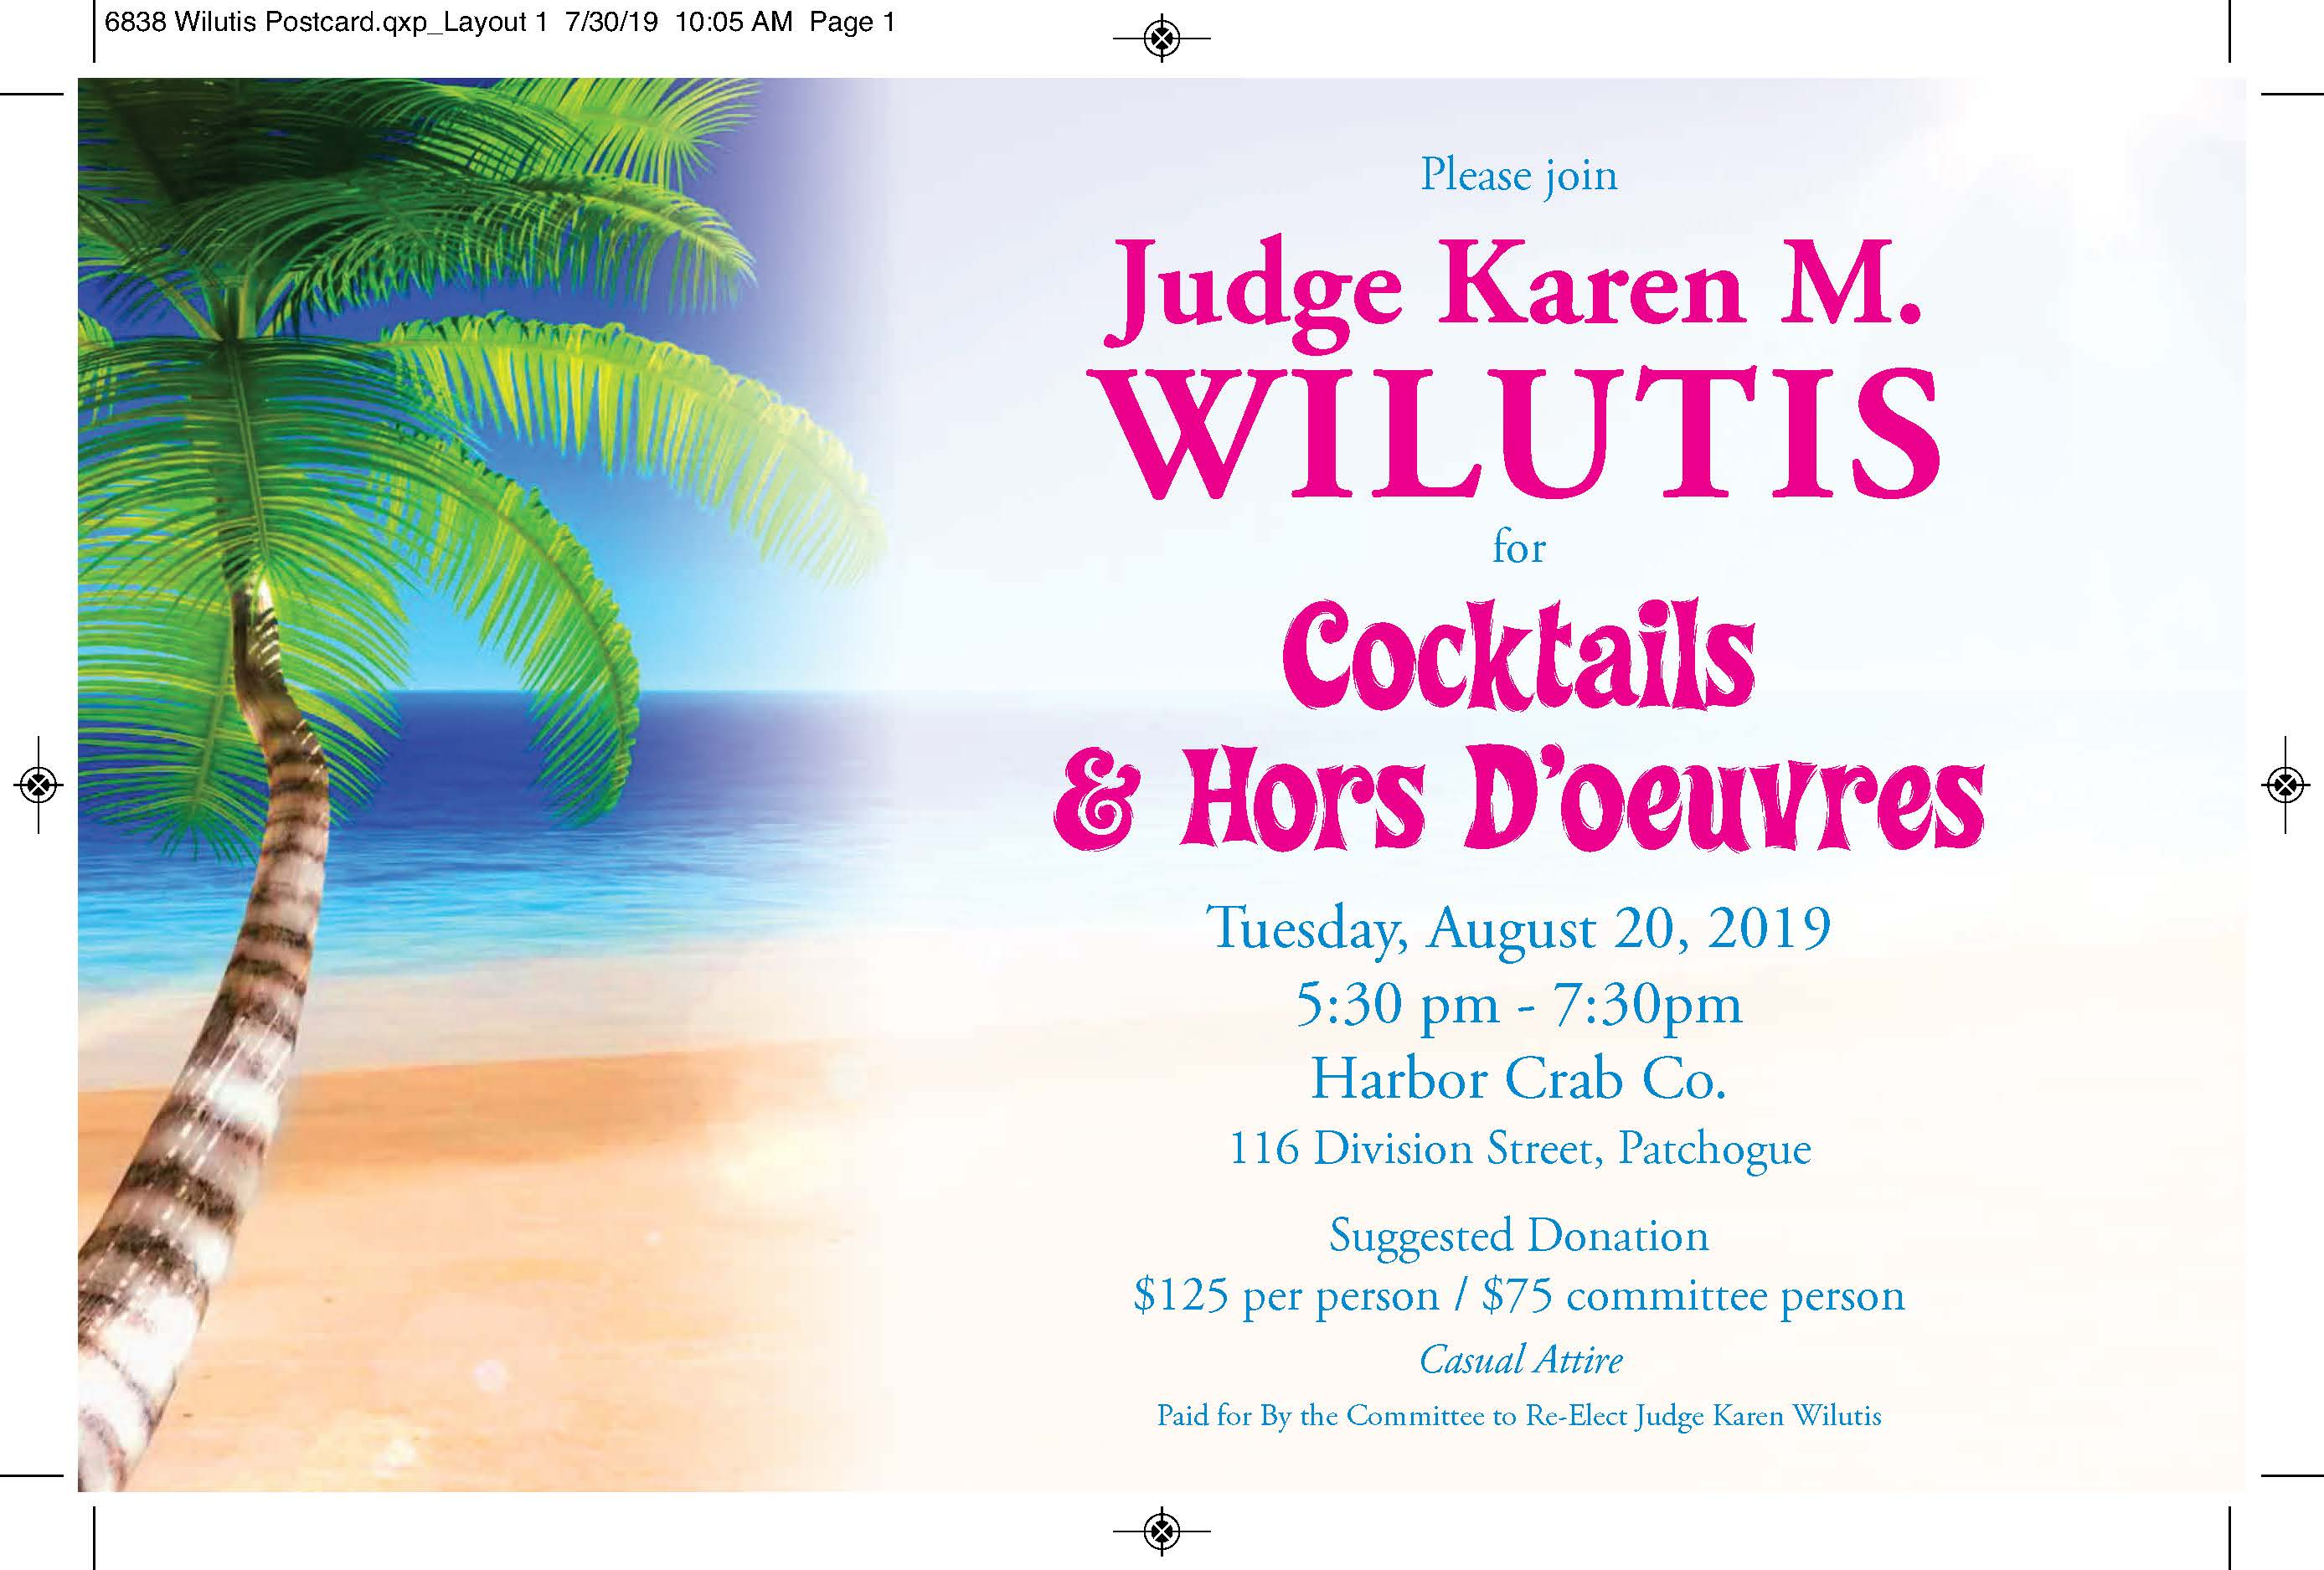 Judge Karen Wilitus